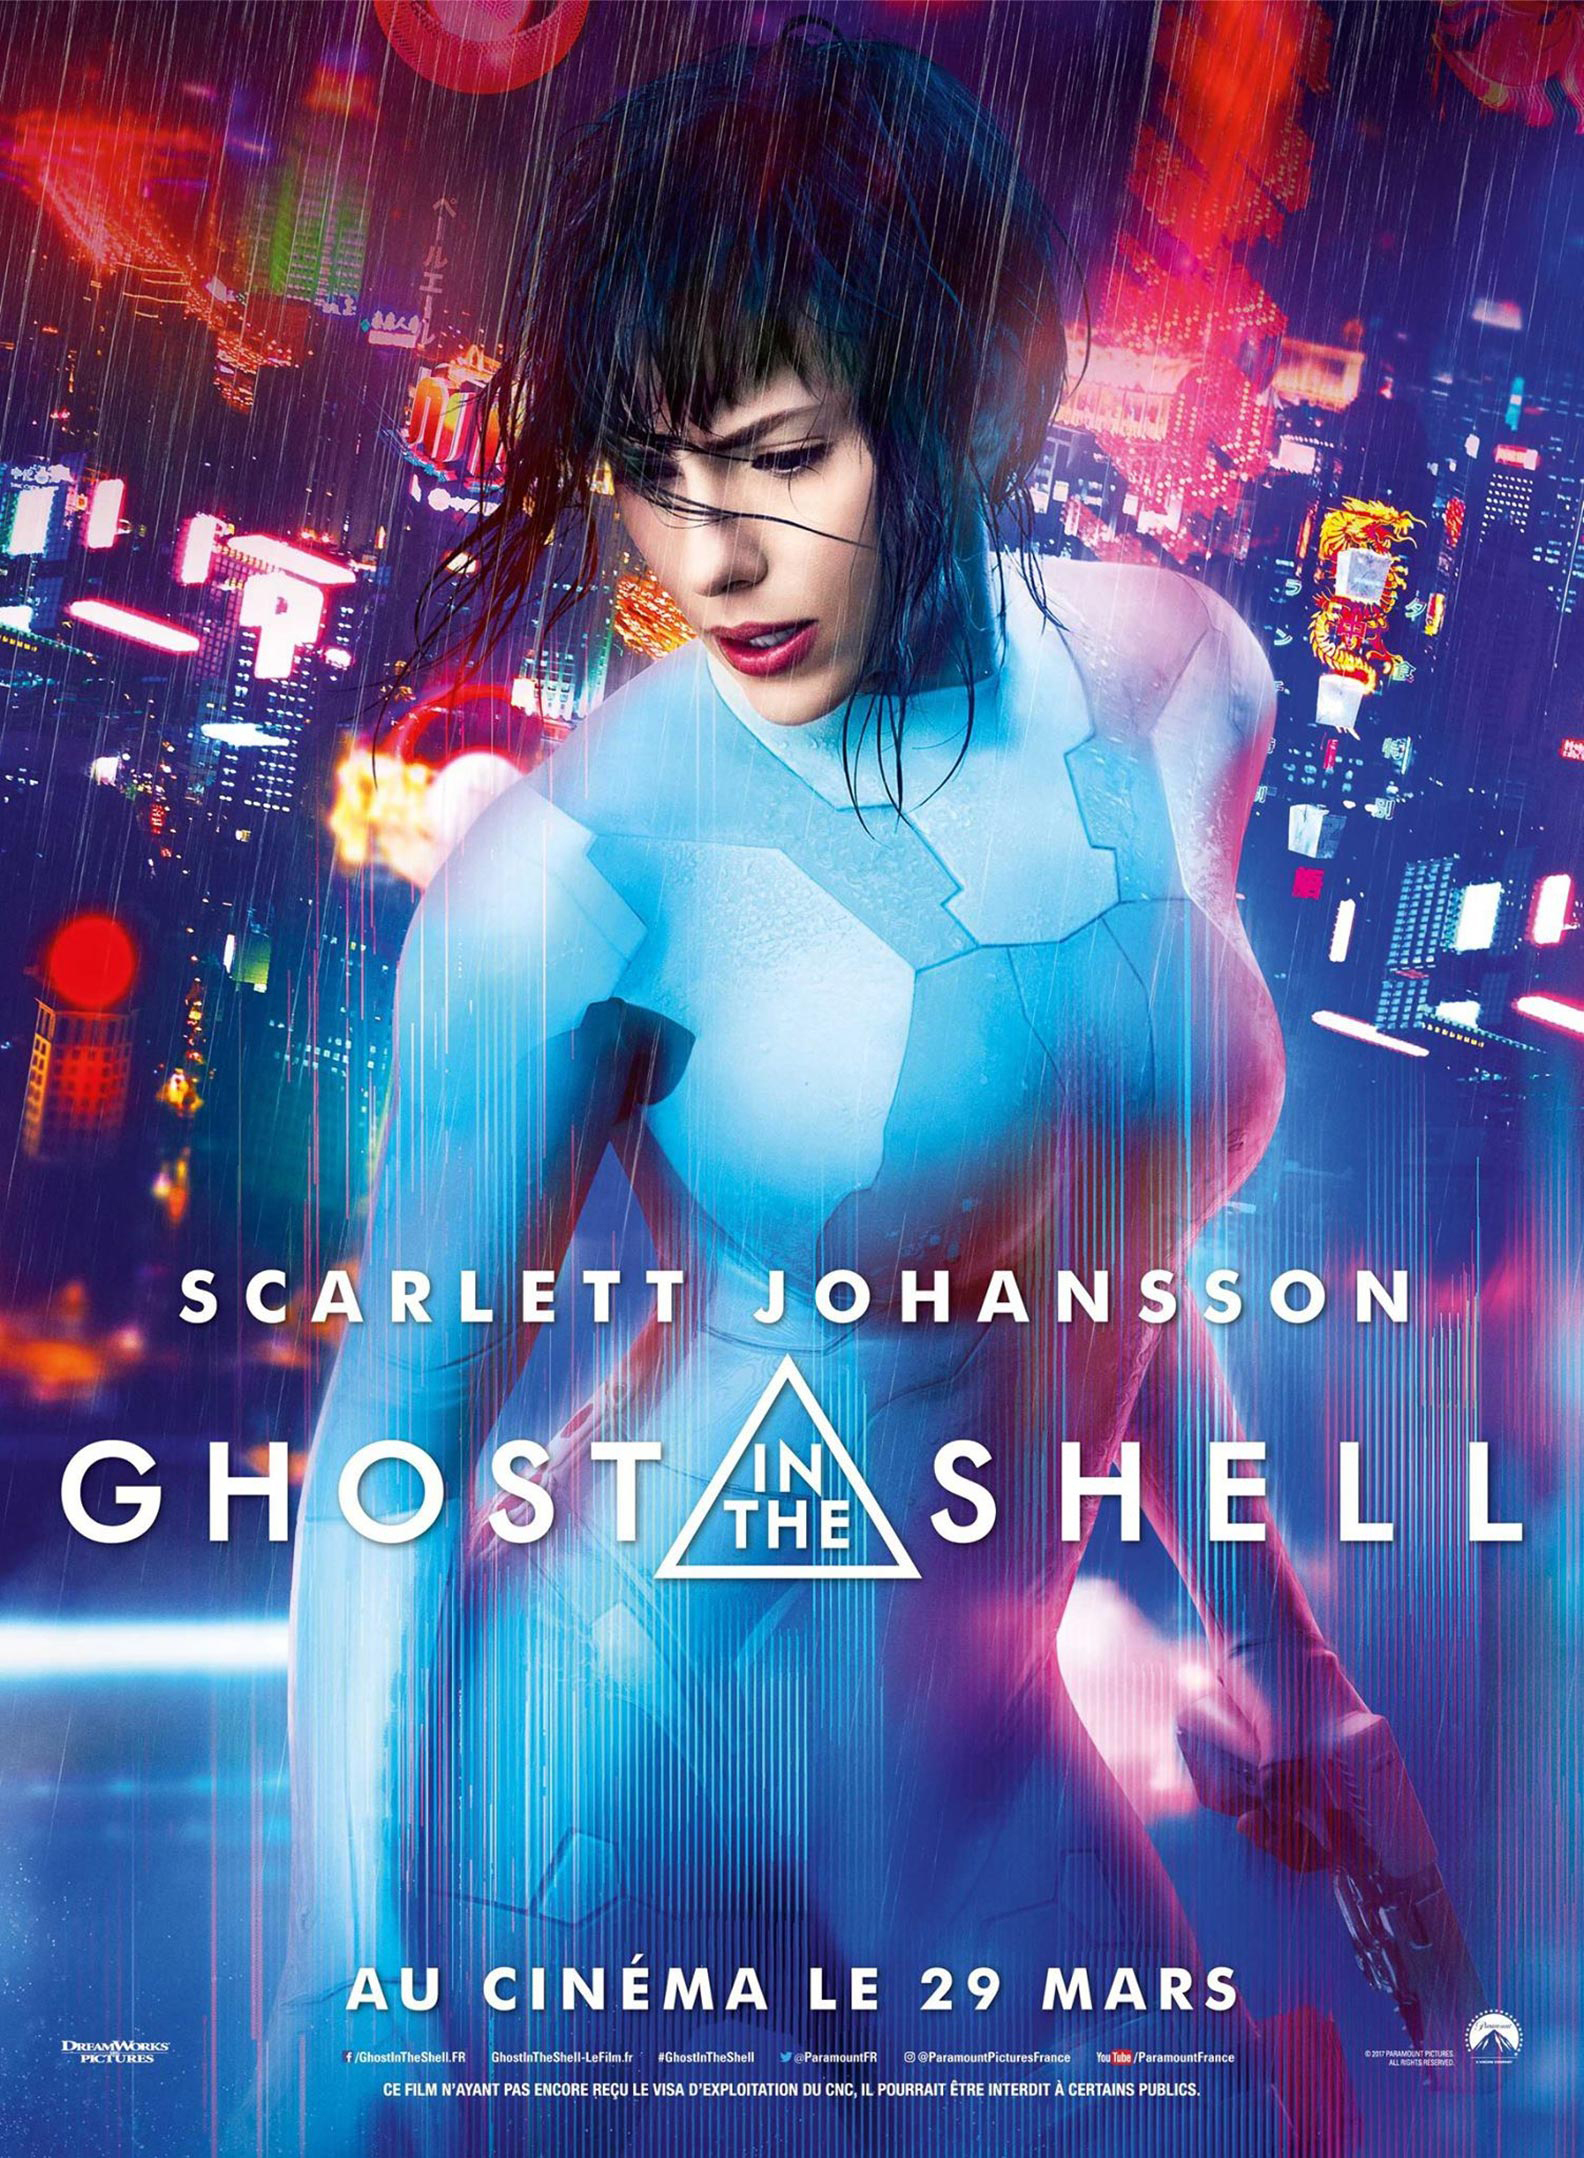 Shell Praiser A Defense Of Ghost In The Shell Electric Shadows